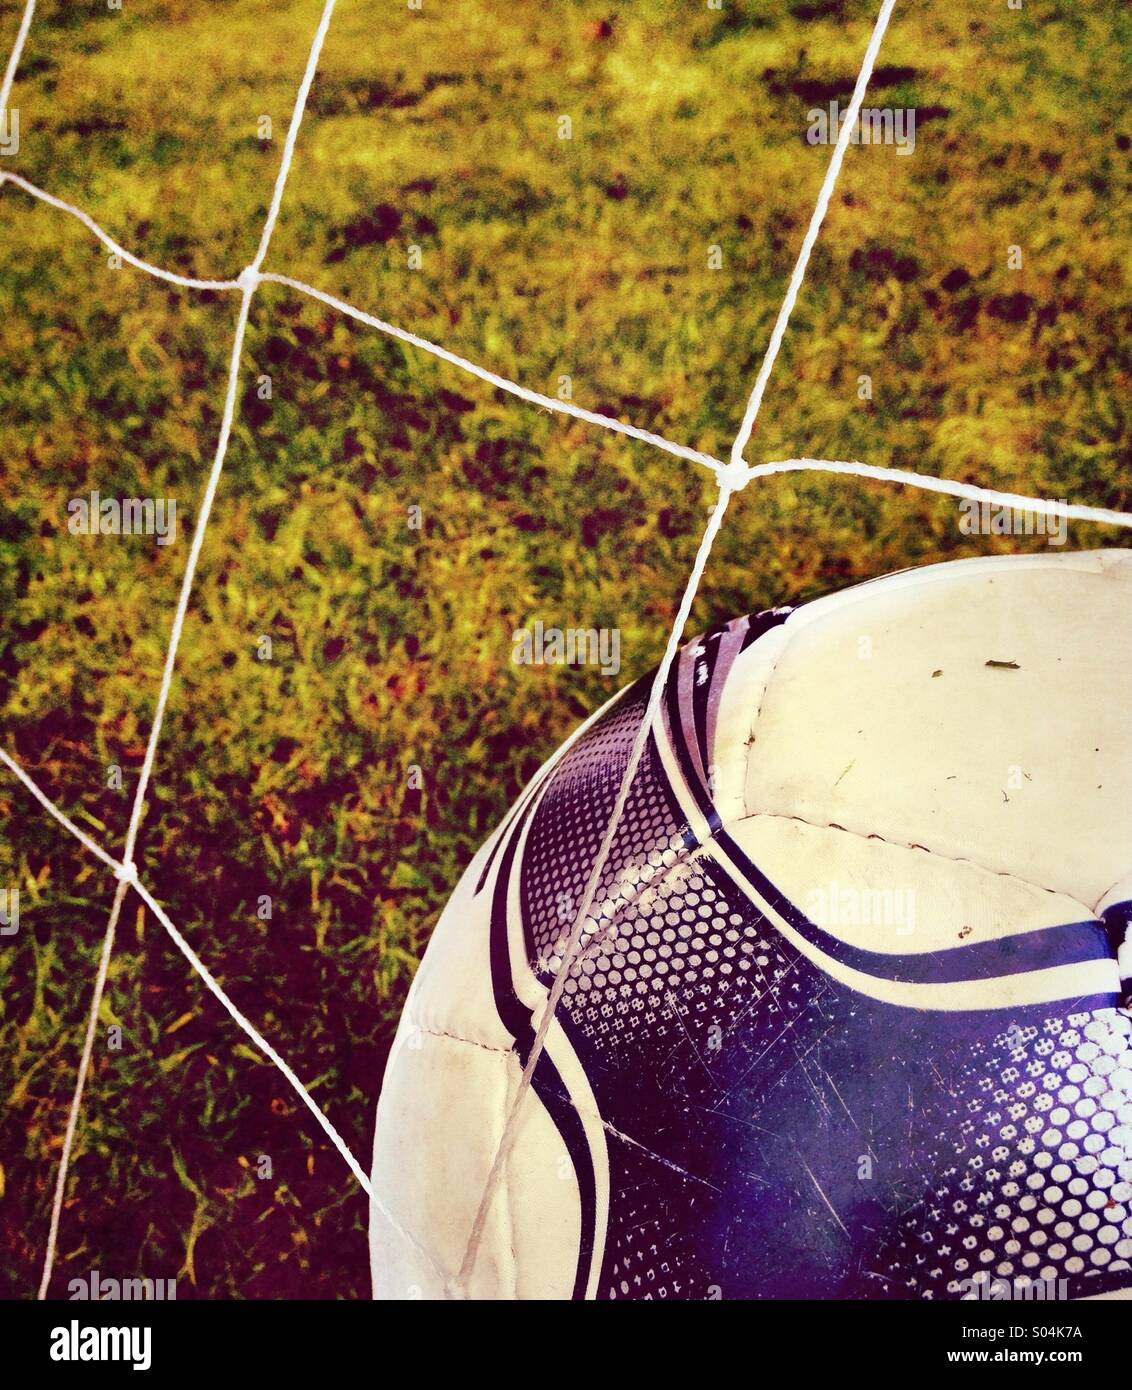 Football in net - Stock Image